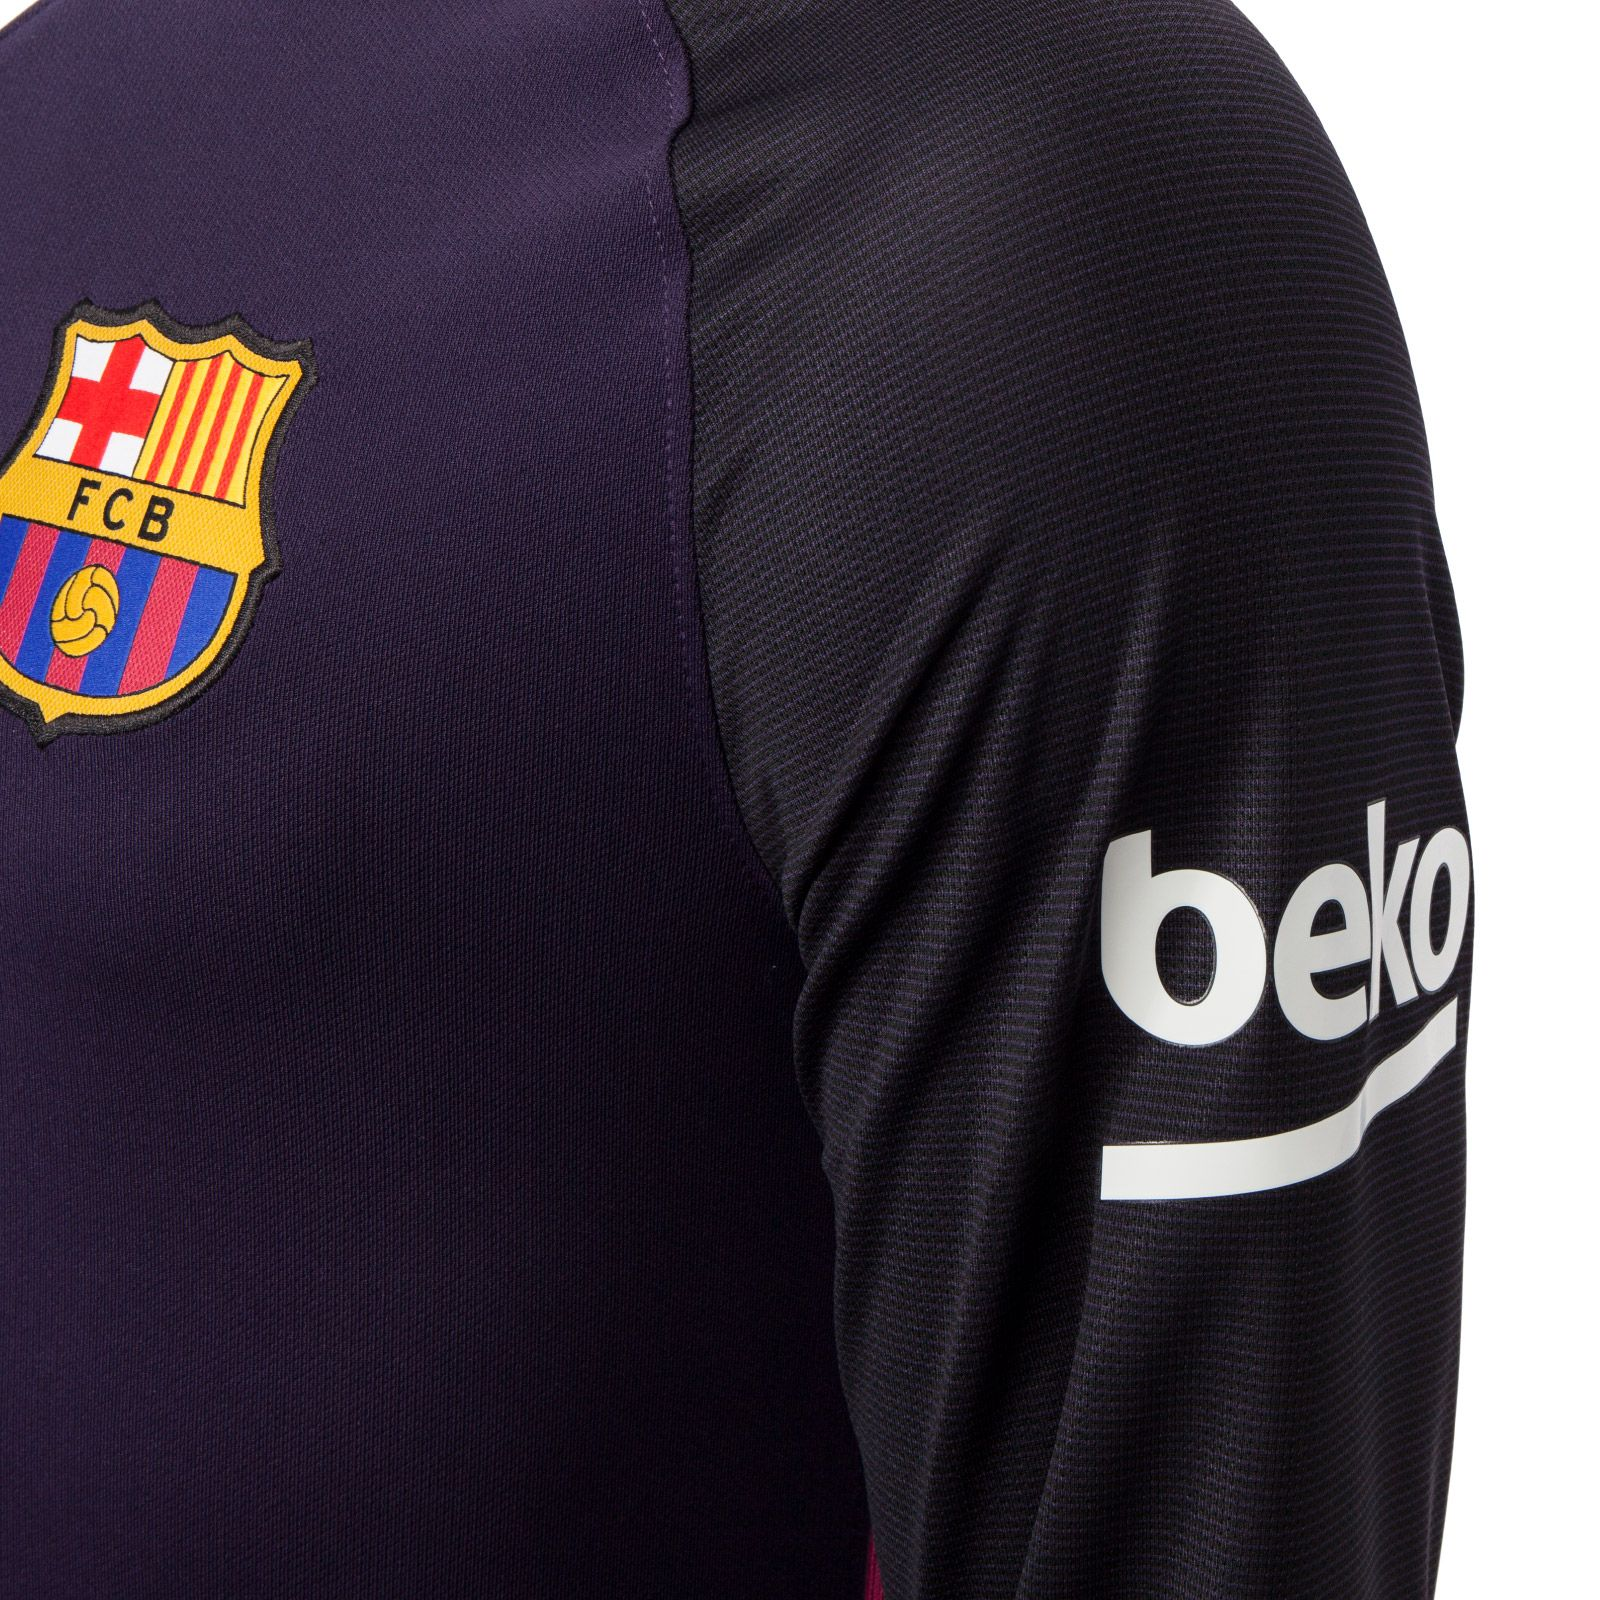 finest selection 63997 80eec fc barcelona long sleeve jersey 2016